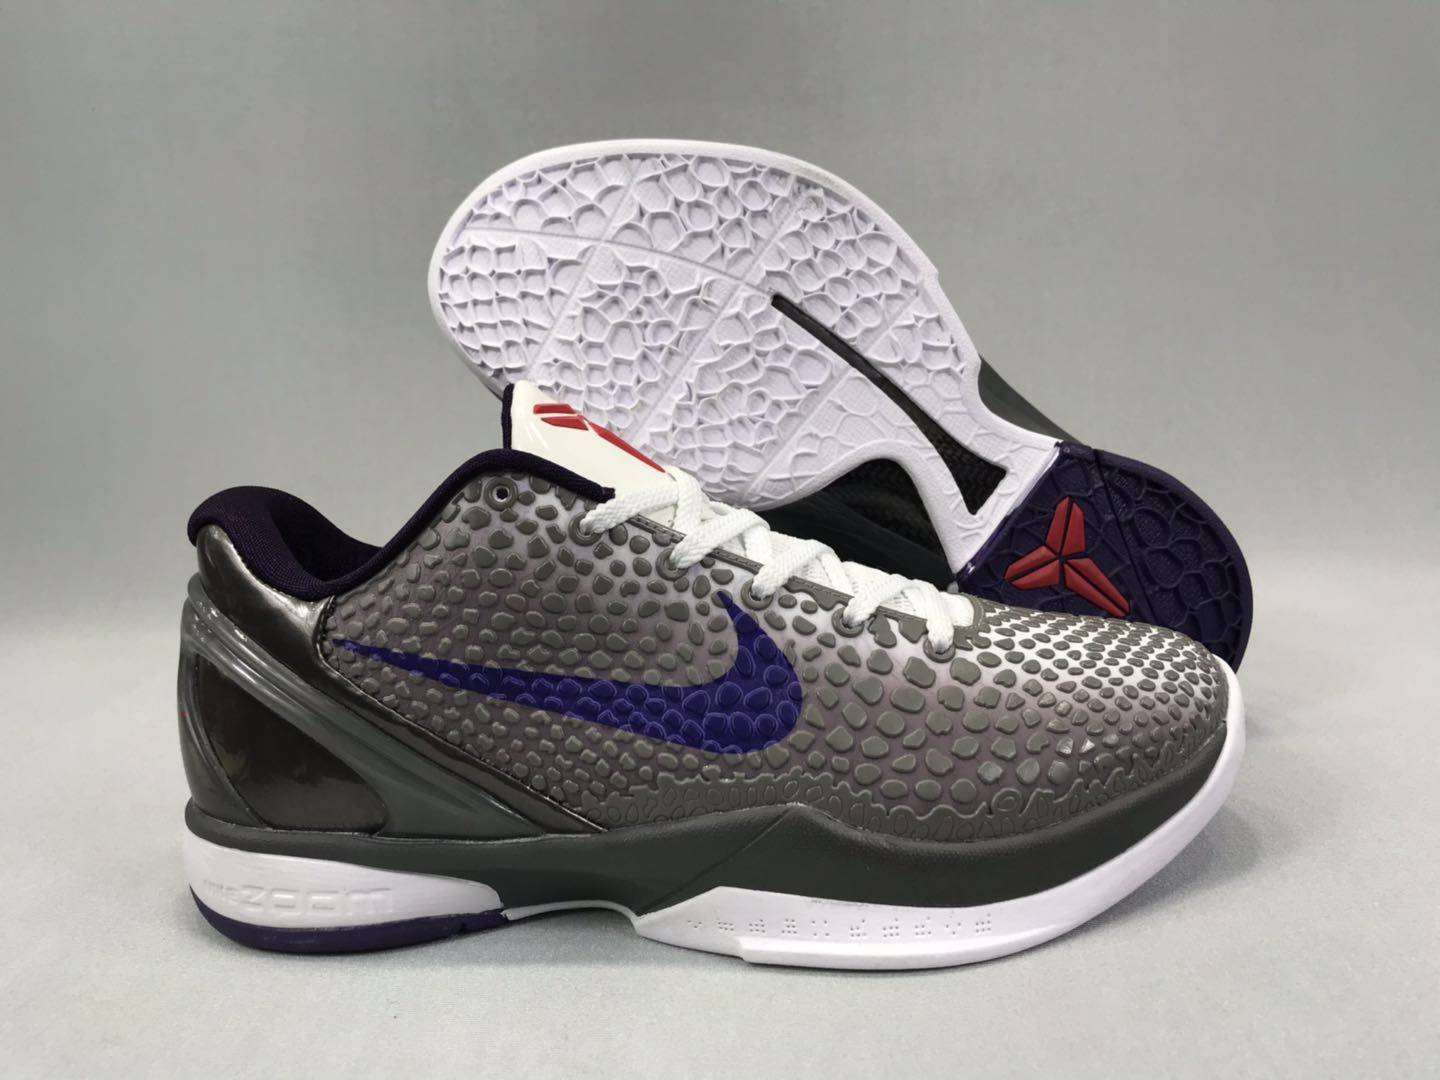 Nike Kobe 6 SnakeSkin Black Blue White Shoes